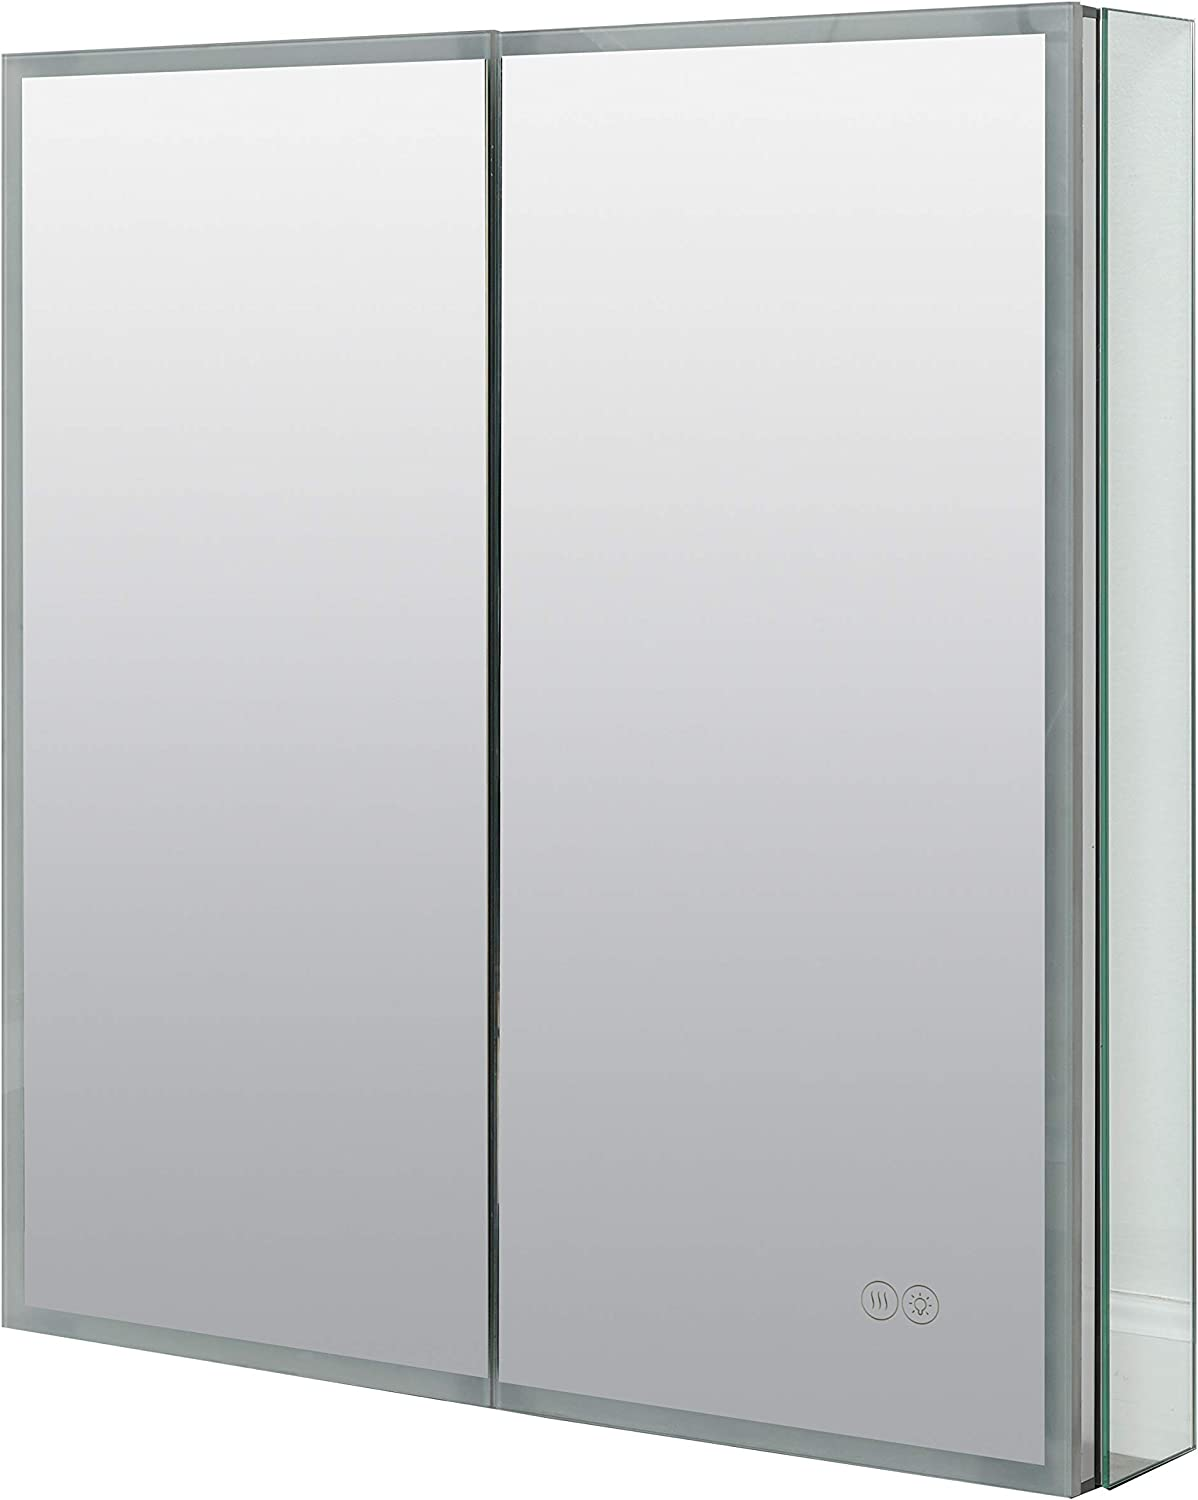 Zenna Home Framed LED Mirror Medicine Cabinet, Designer Series, 2 Doors, Edge-Lit with Anti-Fog Pad, Outlet and Touch Controls, Aluminum